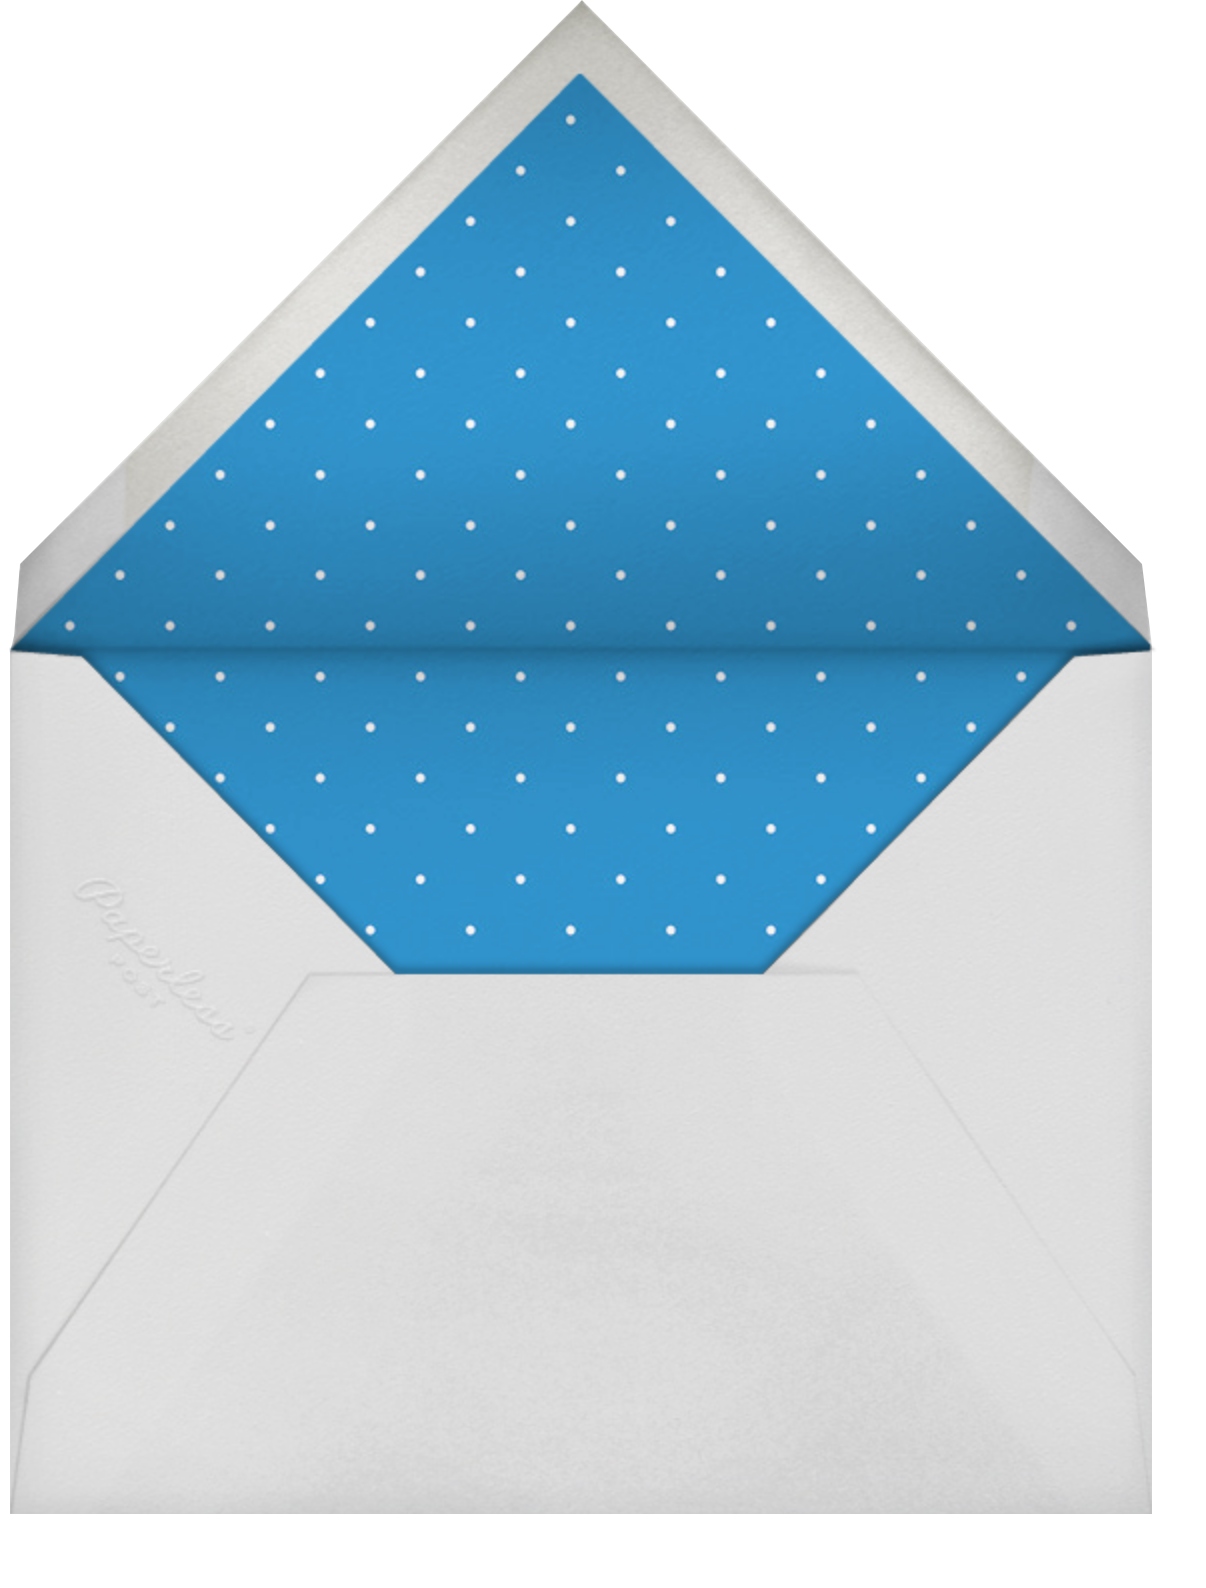 I Need a Diaper - Ocean - Mr. Boddington's Studio - Birth - envelope back